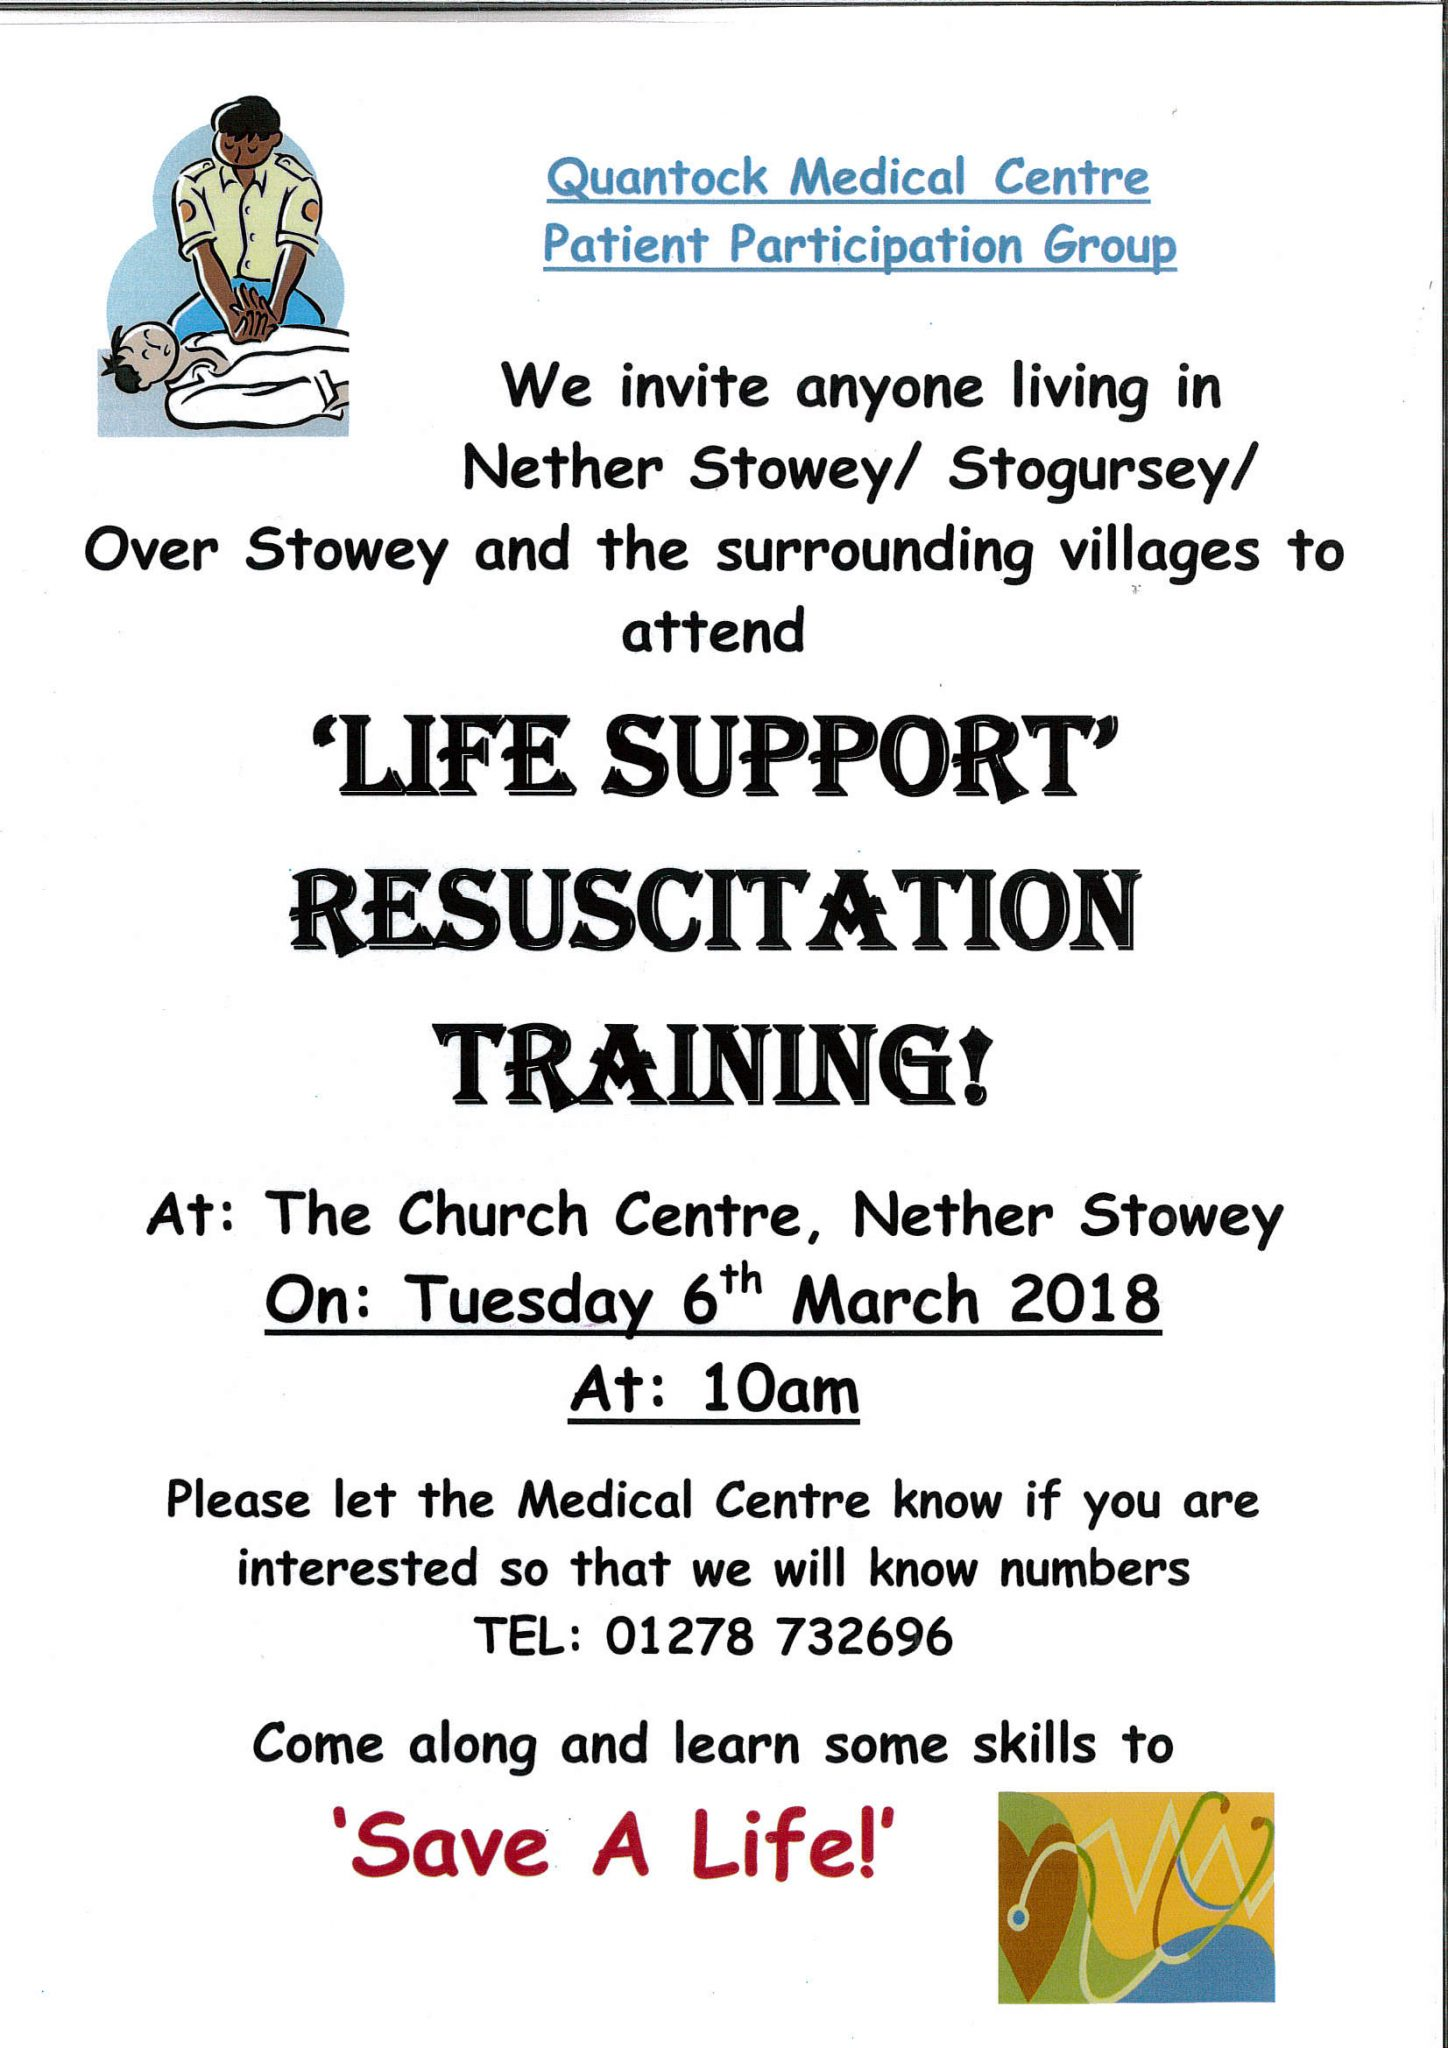 Quantock Medical Centre 'LIFE SUPPORT' RESUSCITATION TRAINING! @ Church Centre | Nether Stowey | England | United Kingdom